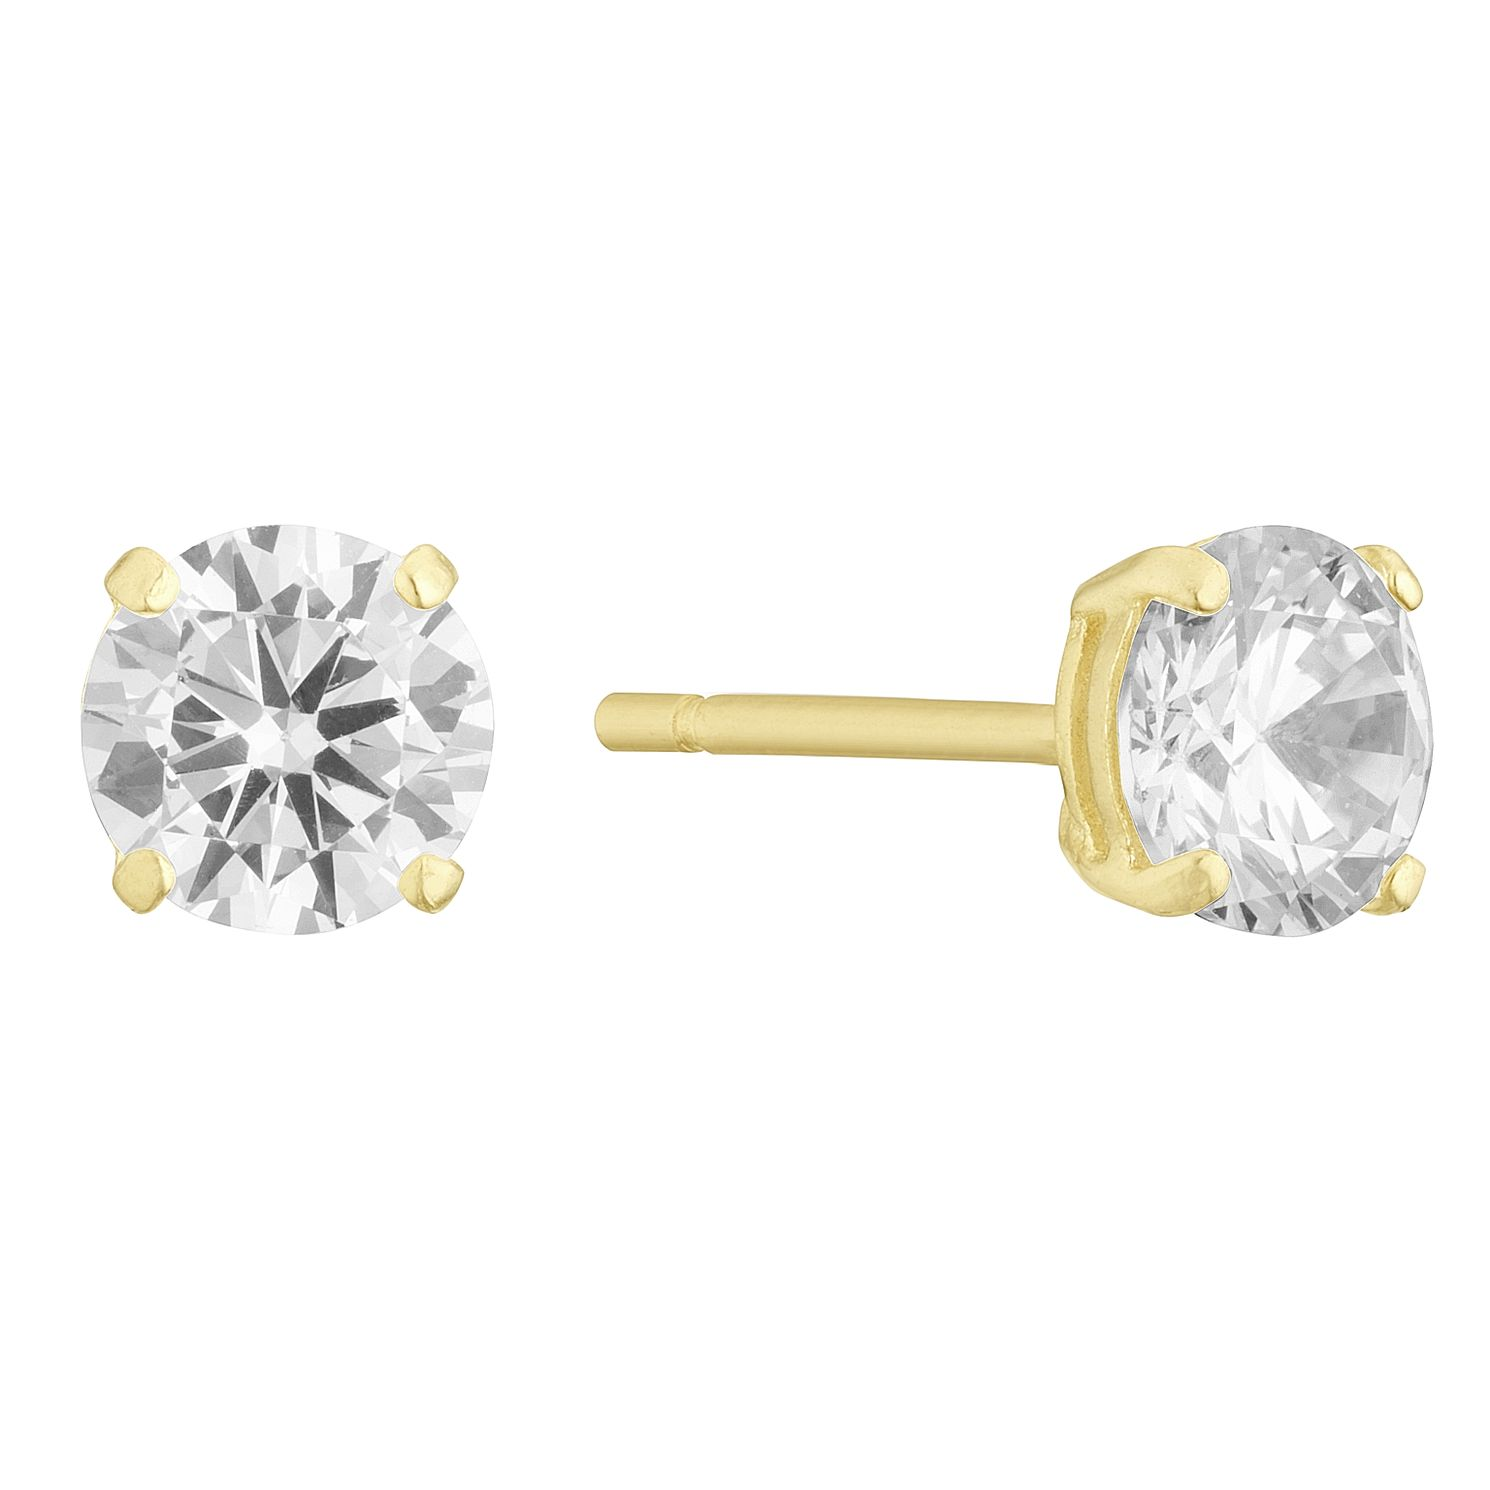 9ct Yellow Gold Cubic Zirconia 5mm Round Stud Earrings - Product number 3142337